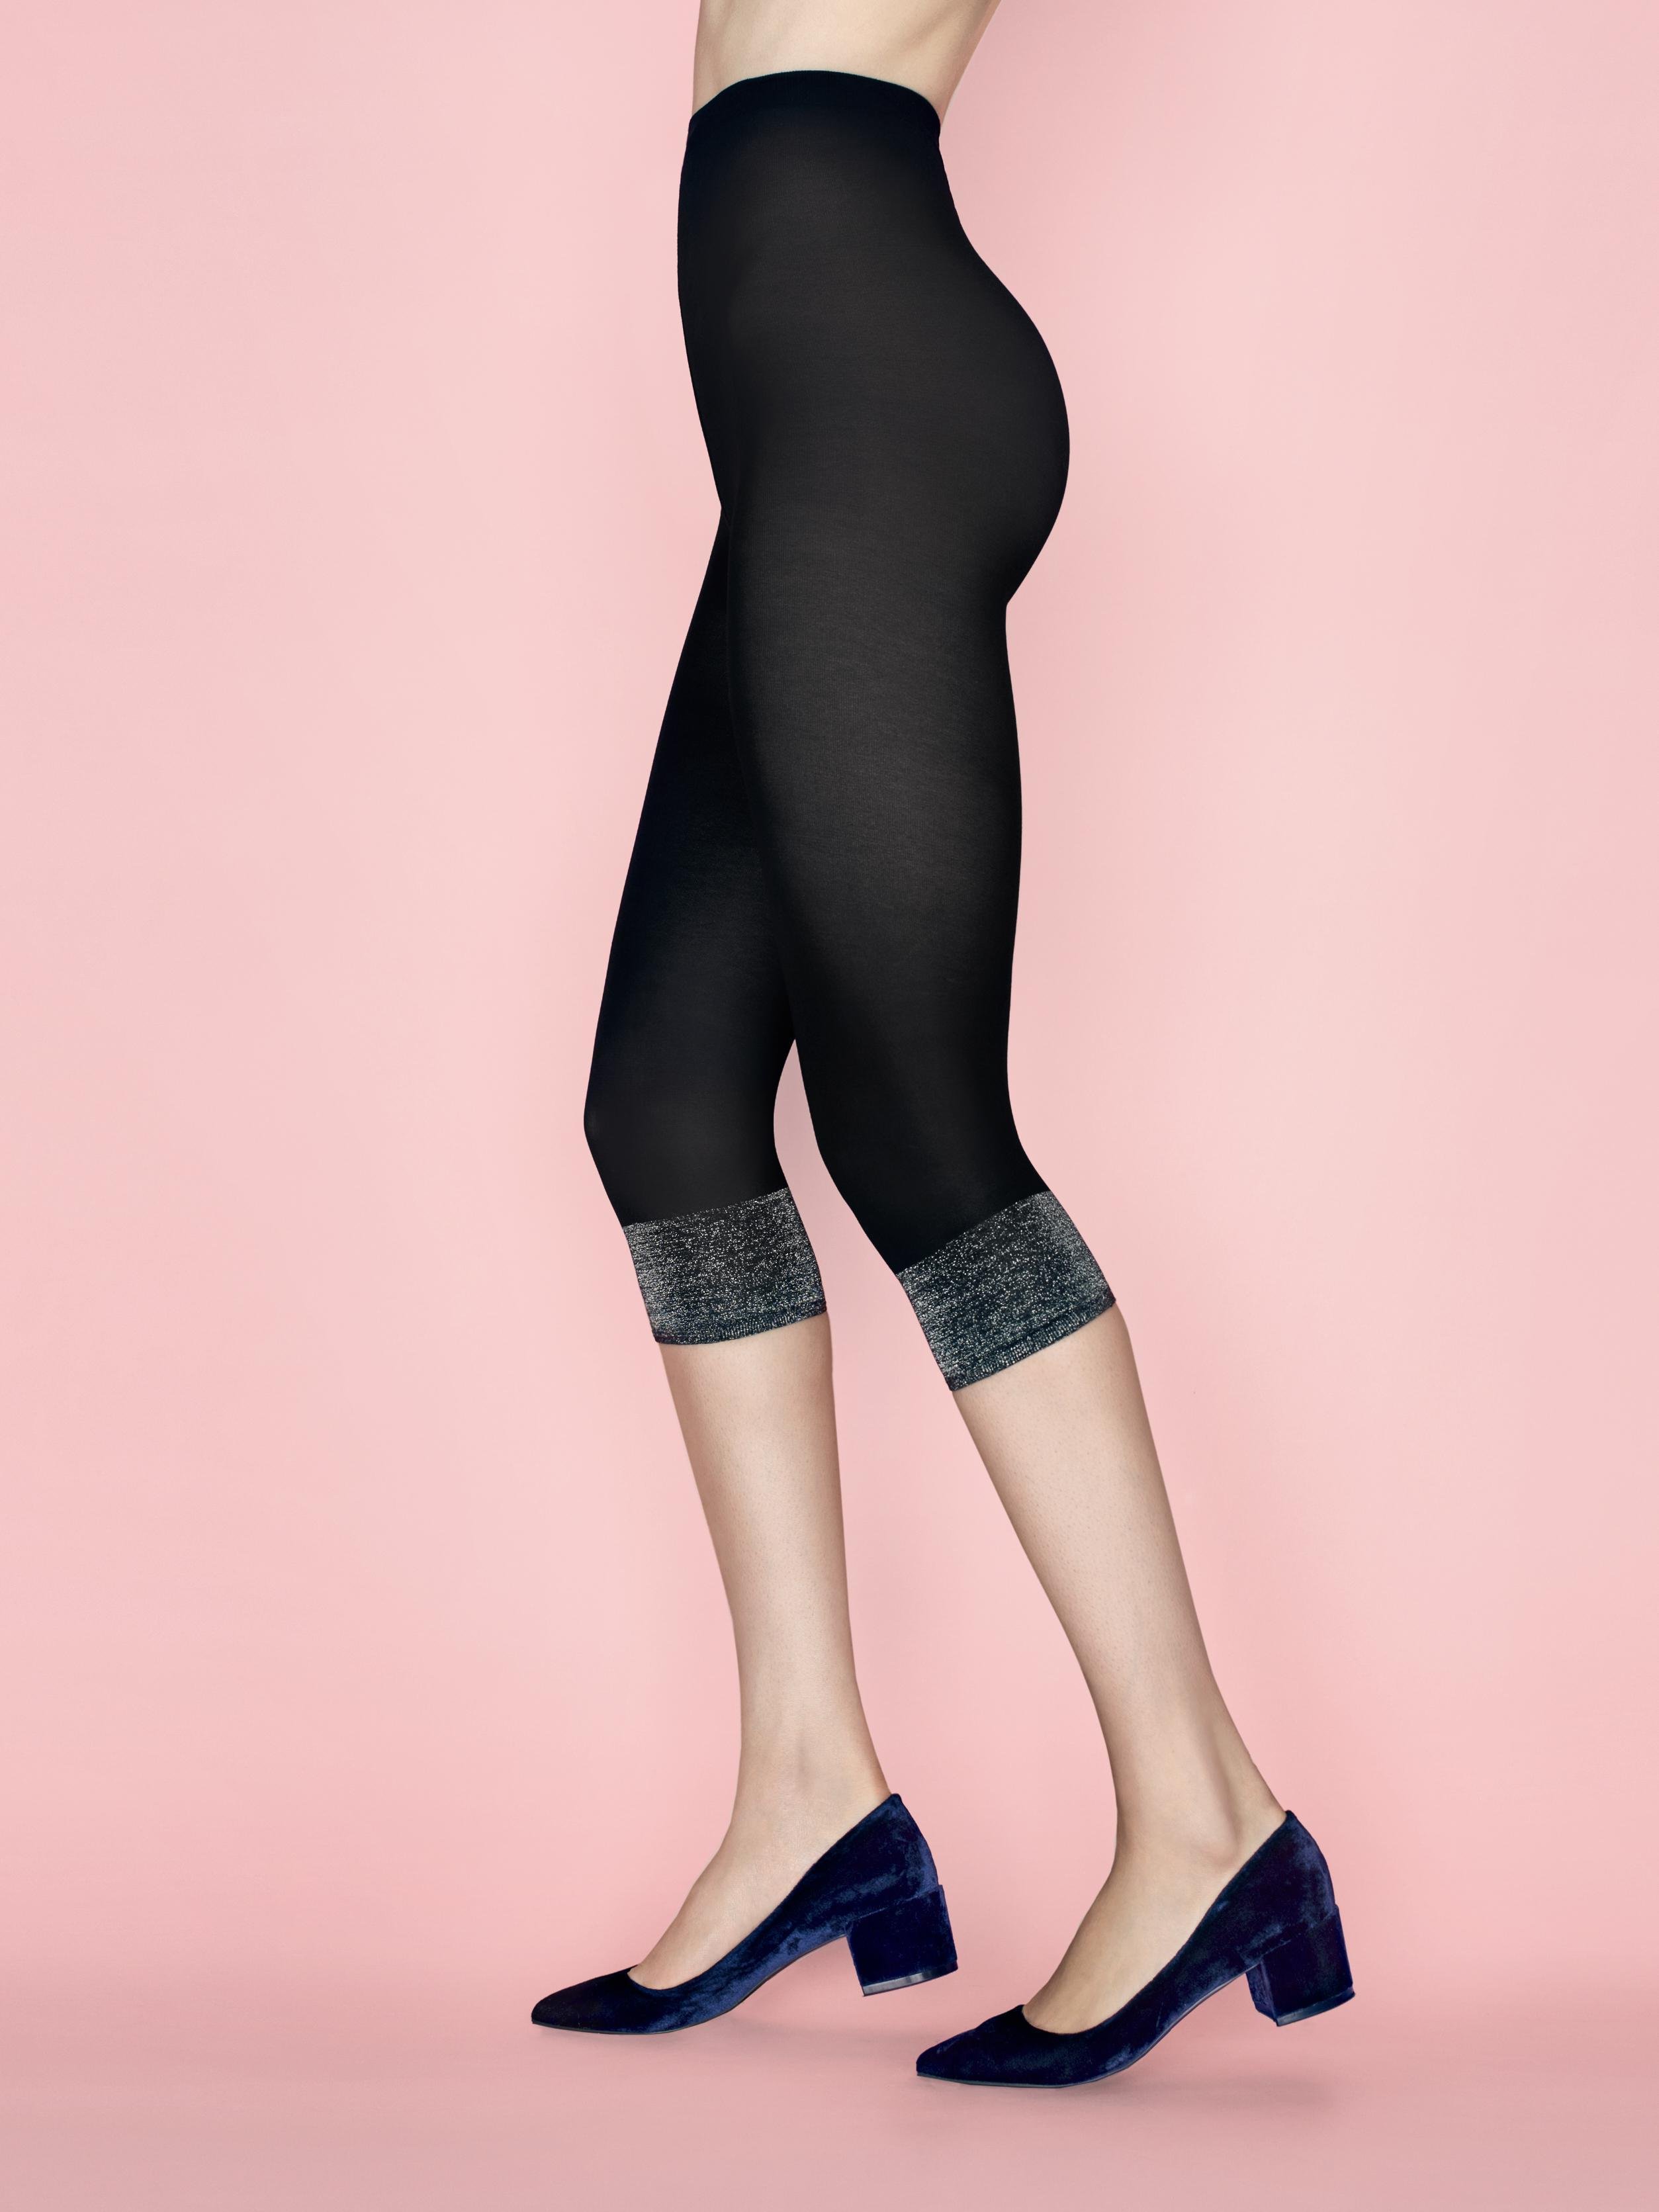 Fiore: Opaque Metallic Patterned Crop Cut Footless Tights (In Black & Creme) FIO_FOXYLADY_N